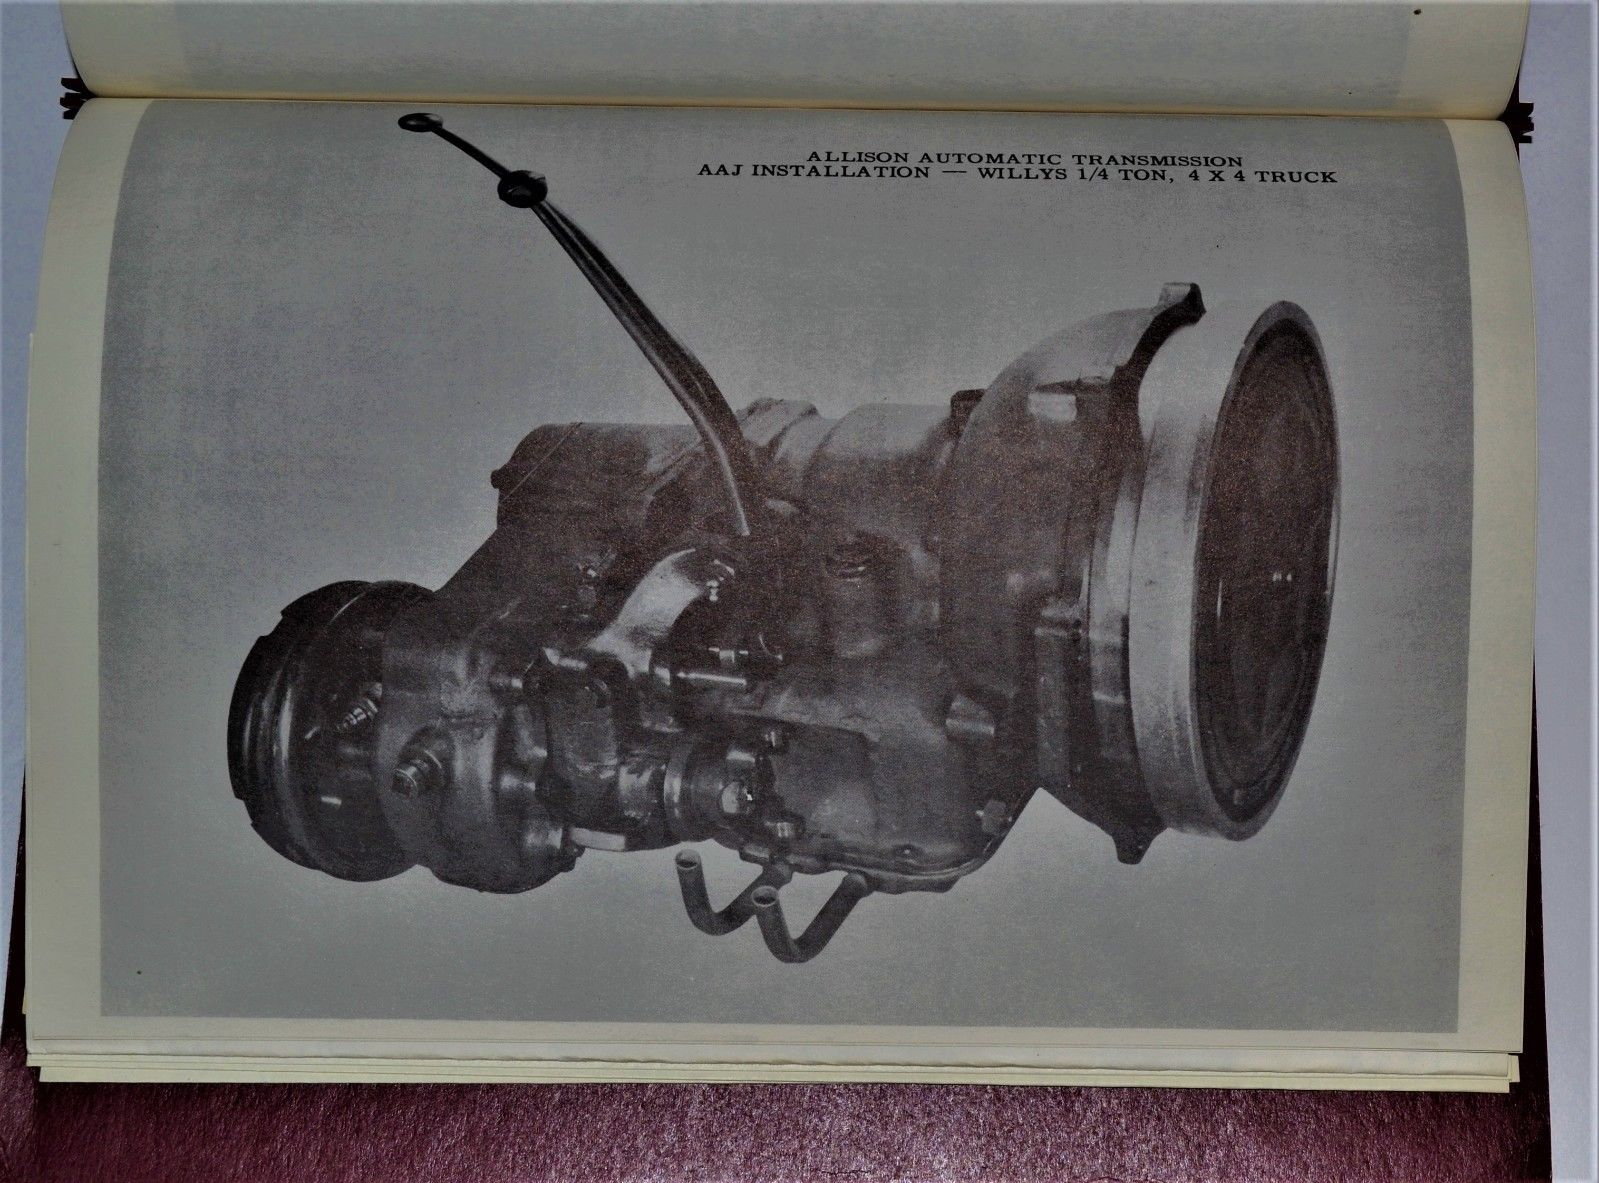 1952-m38a1-transmission-document6